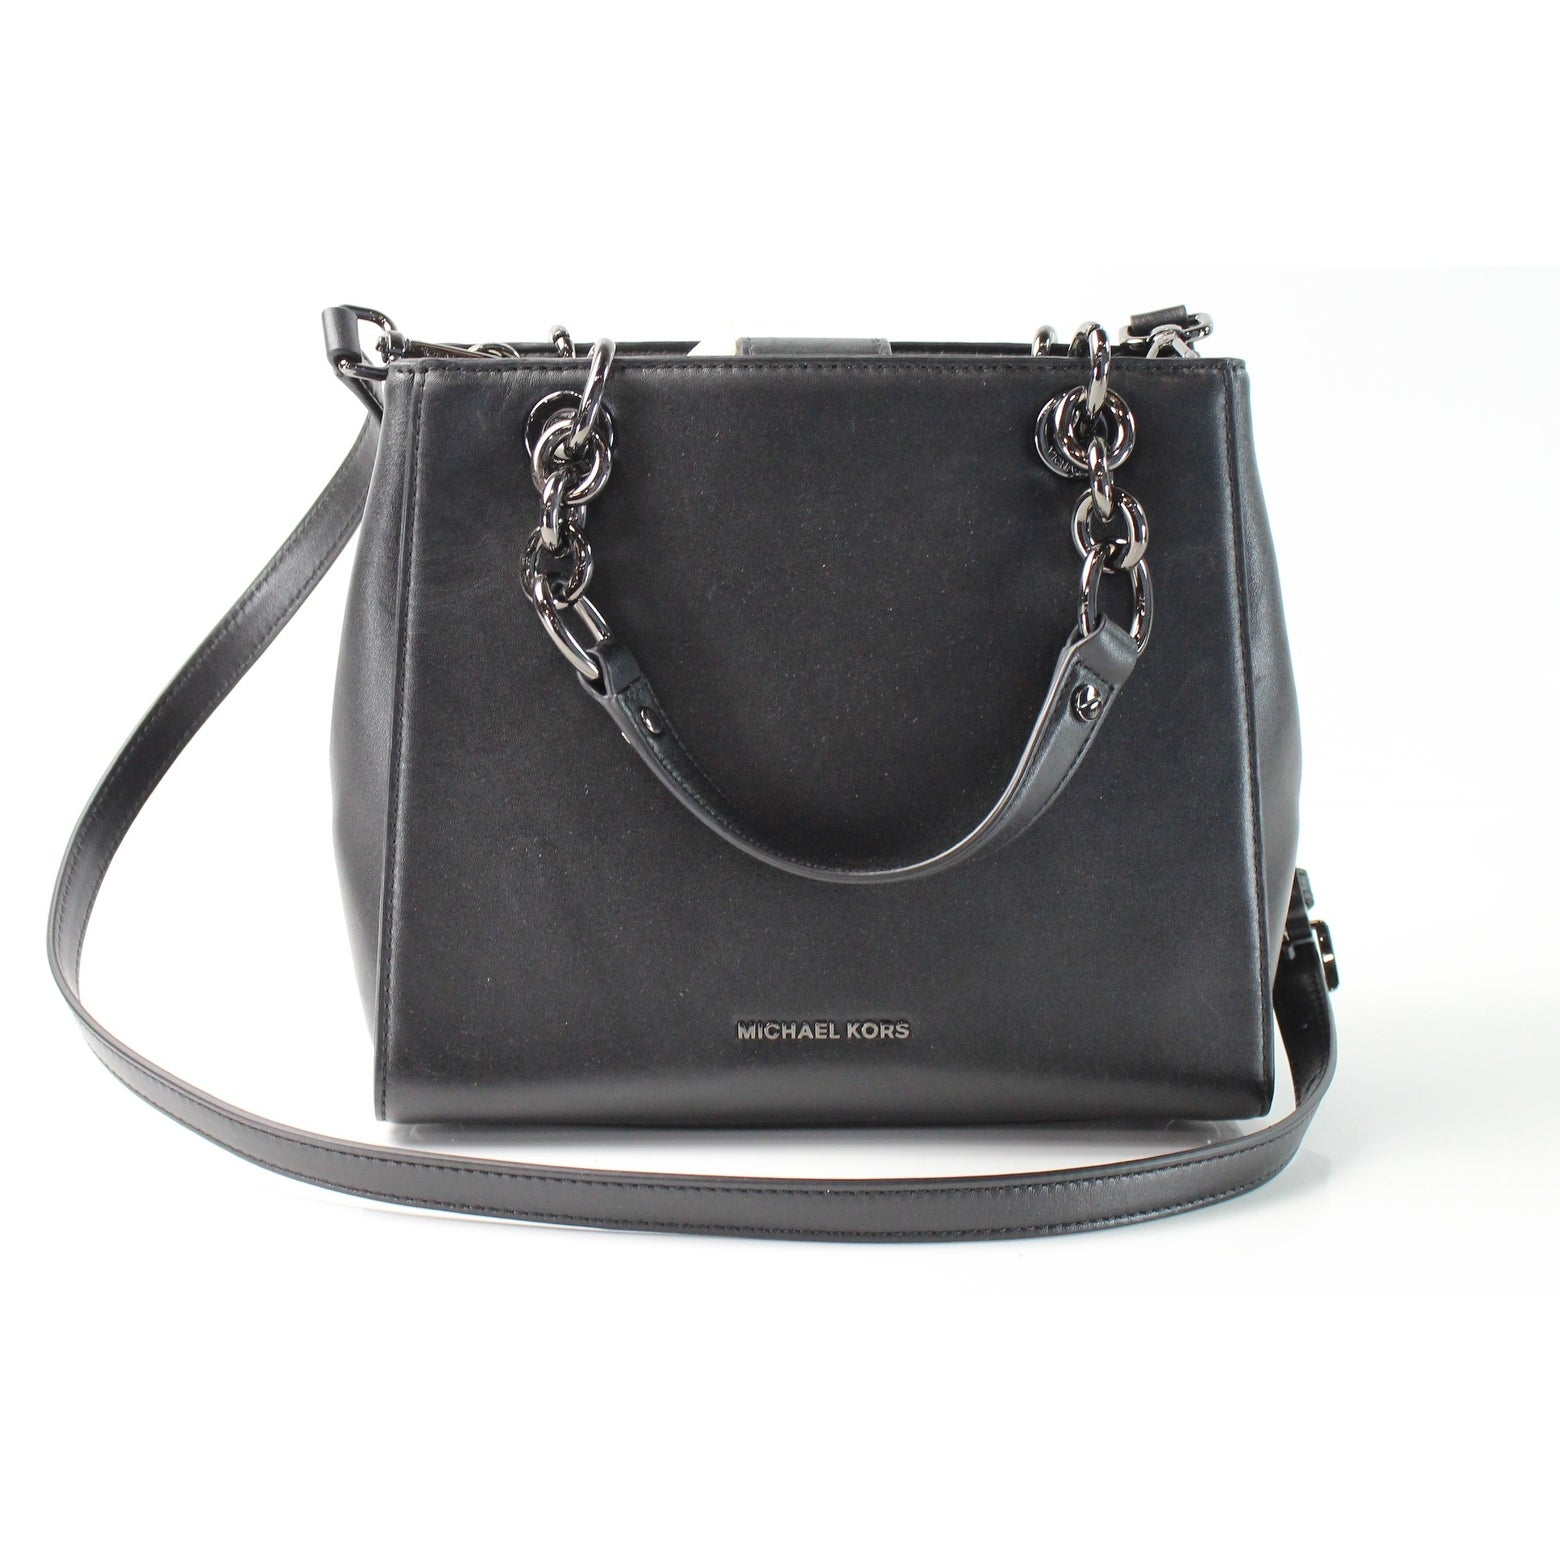 df42f4cae23a33 Shop Michael Kors NEW Black Leather Small Floral Burst Satchel Purse - Free  Shipping Today - Overstock - 18387005